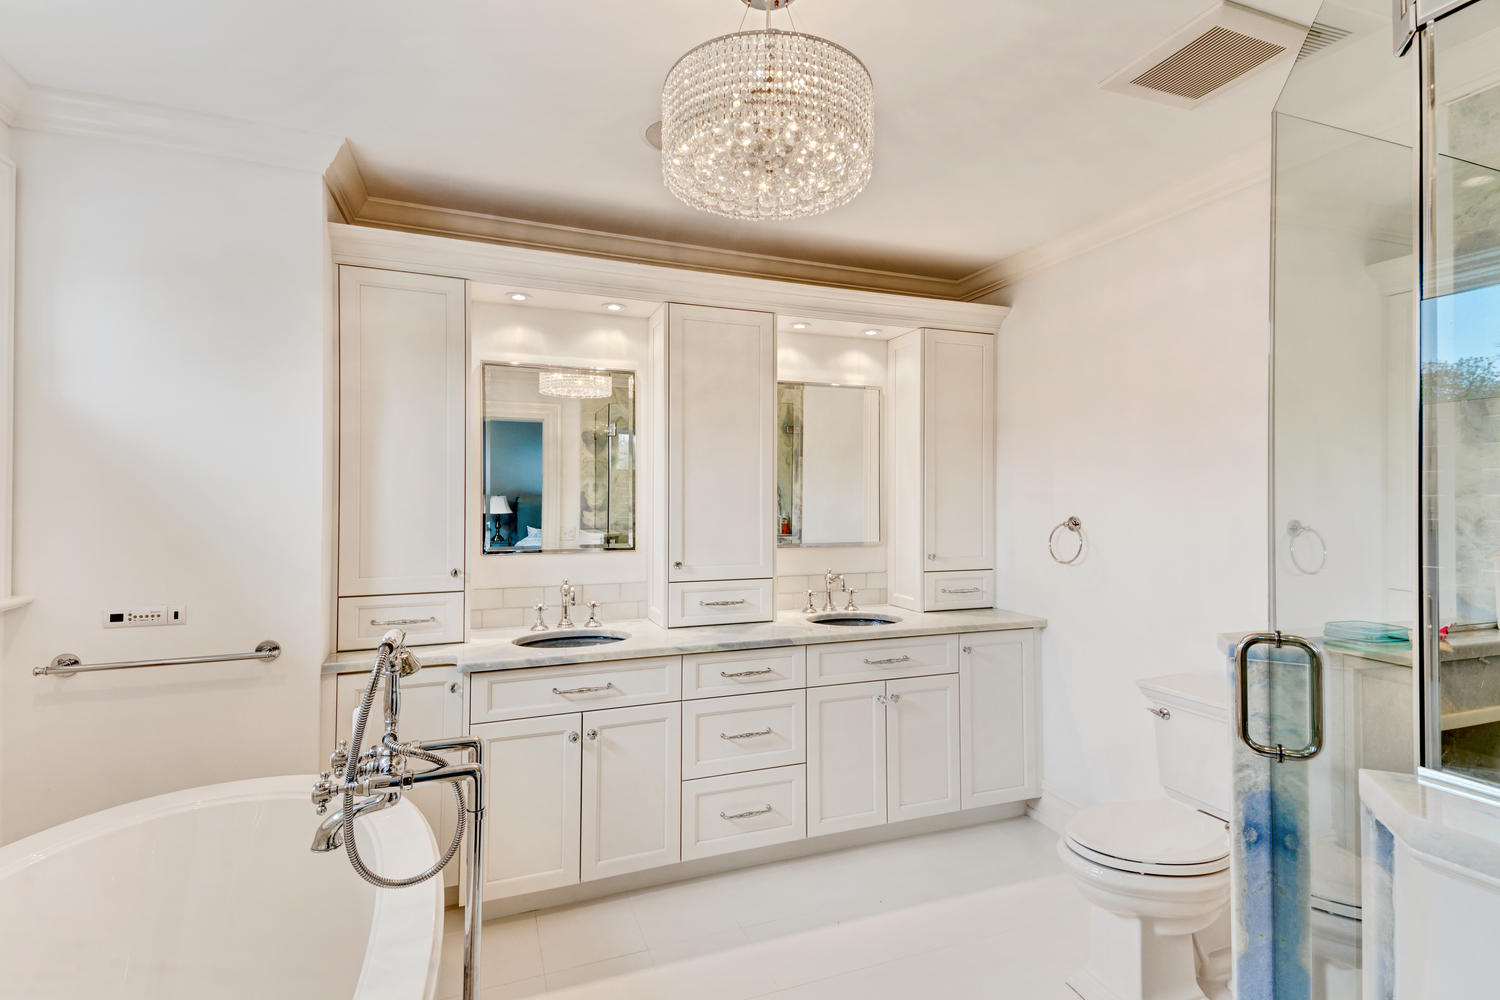 Bath Vanities Monmouth County New Jersey by Design Line ...